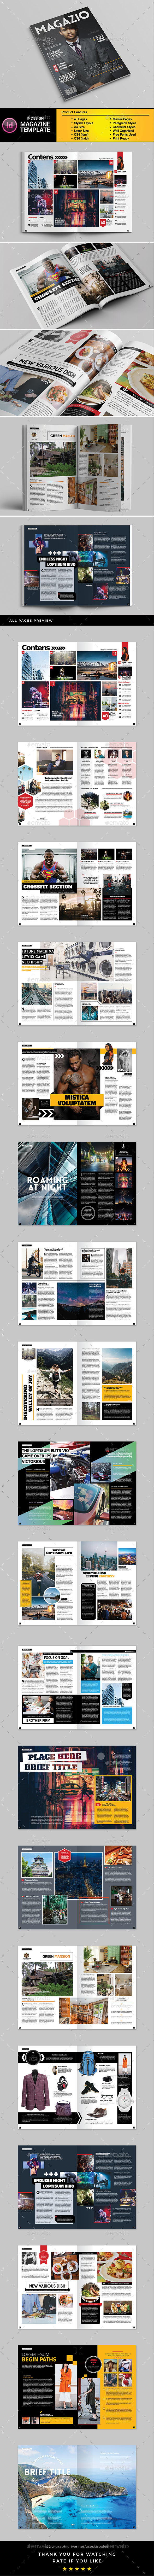 A4 Letter Magazine Template - Magazines Print Templates